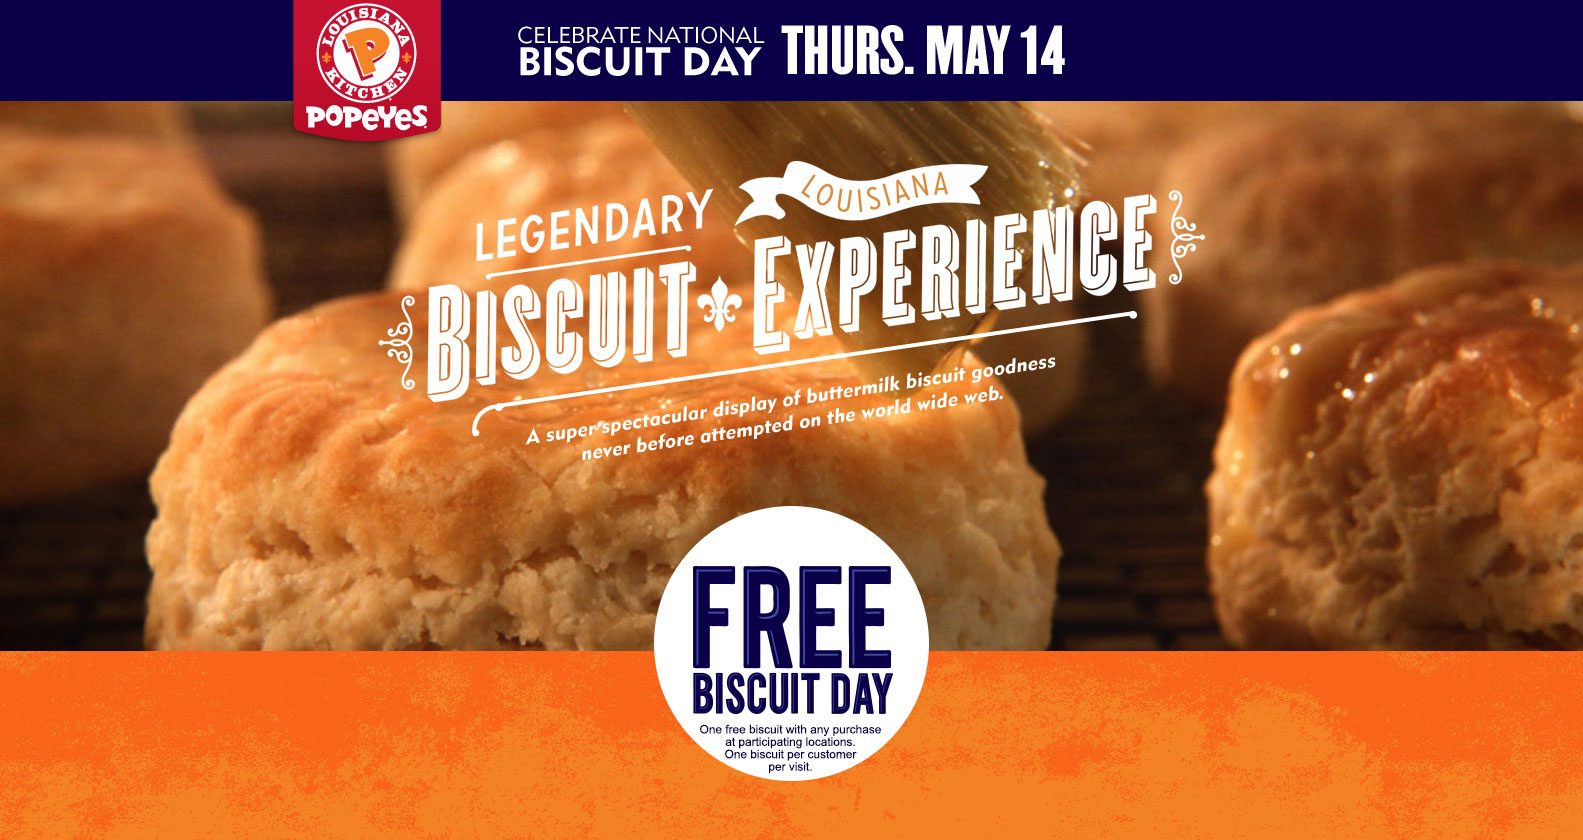 Popeyes Coupon March 2017 Free biscuit with any order today at Popeyes chicken